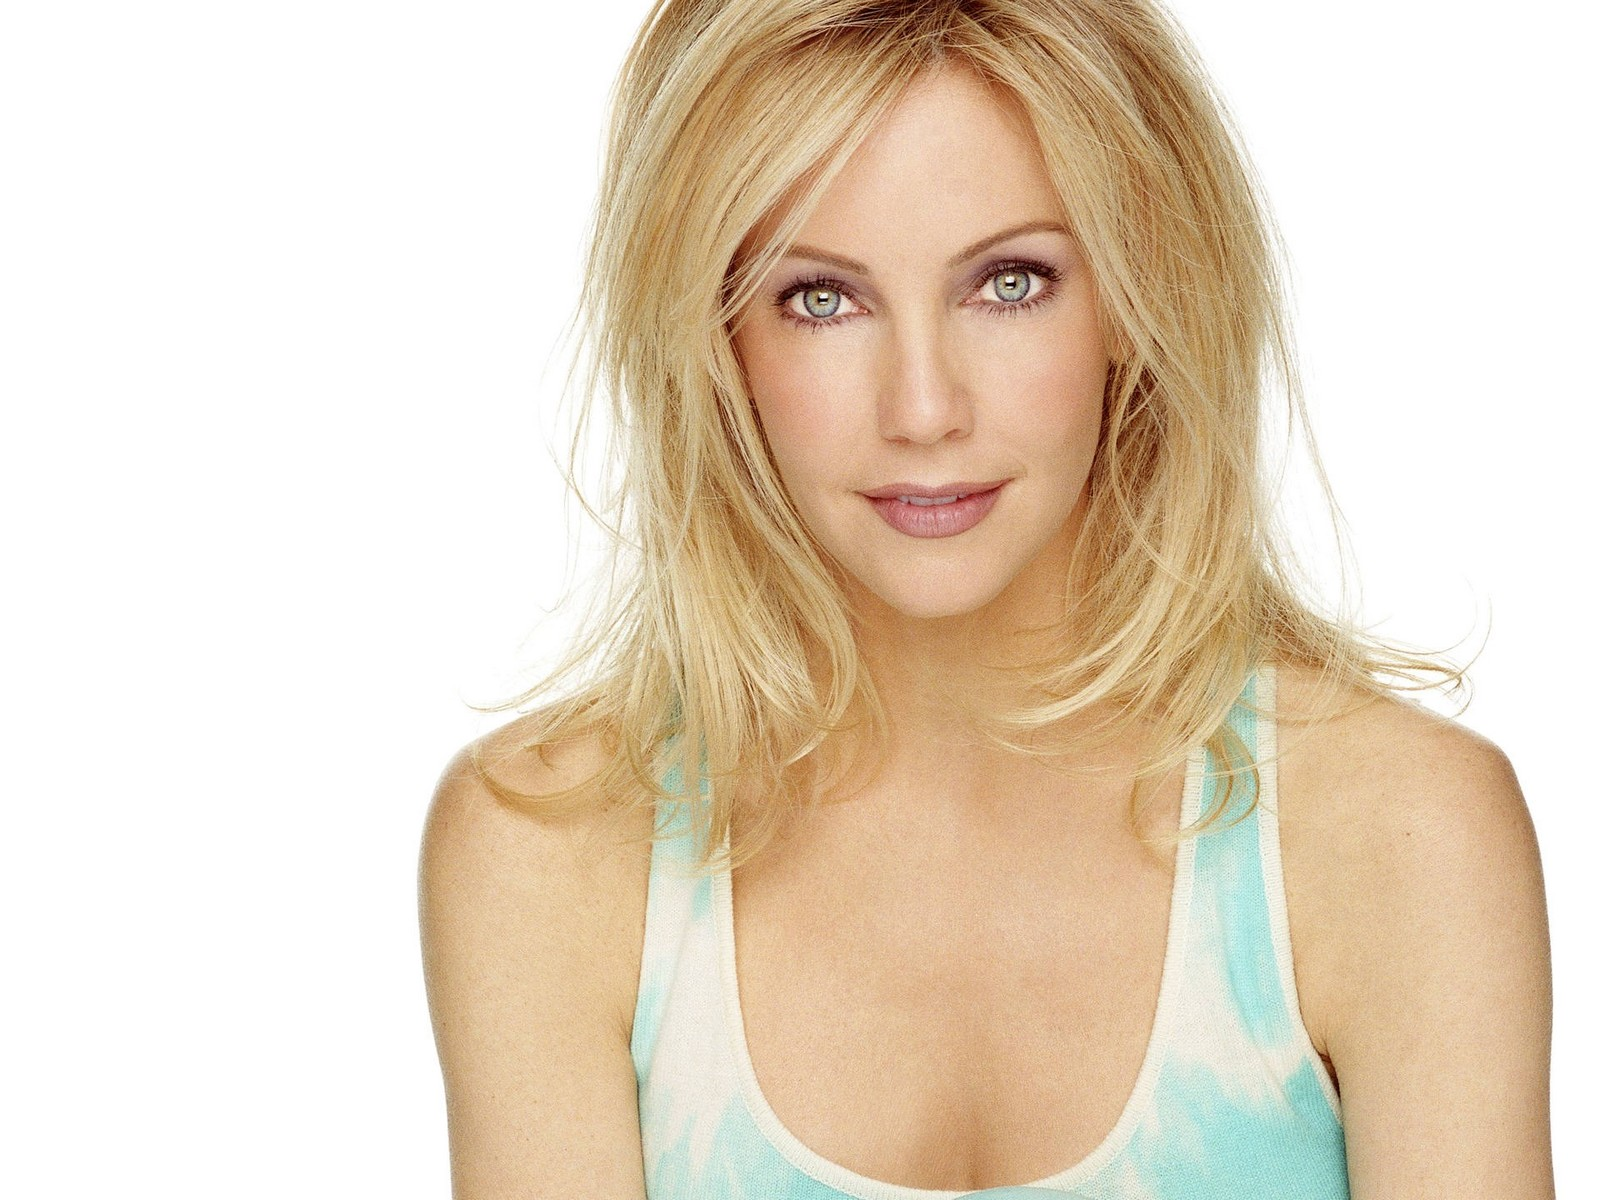 1600x1200 - Heather Locklear Wallpapers 15